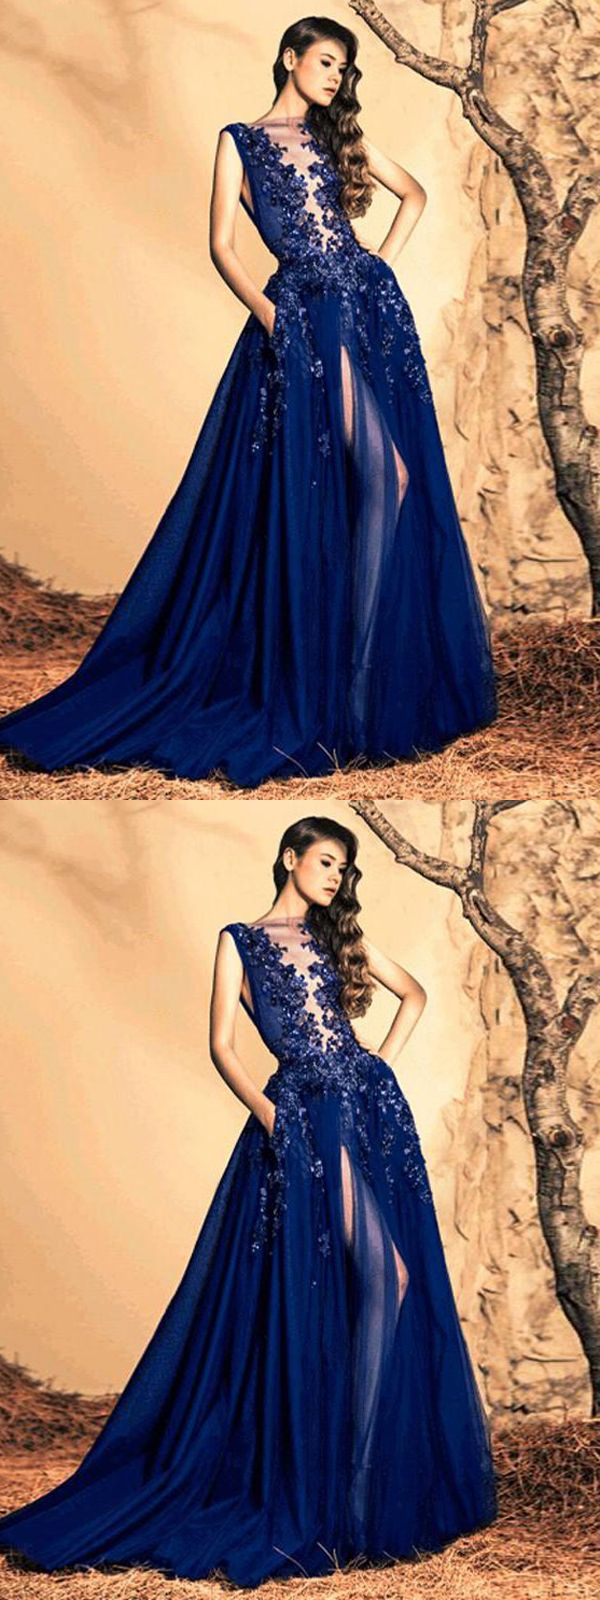 prom dress royal blue brush train appliques sequins prom dress